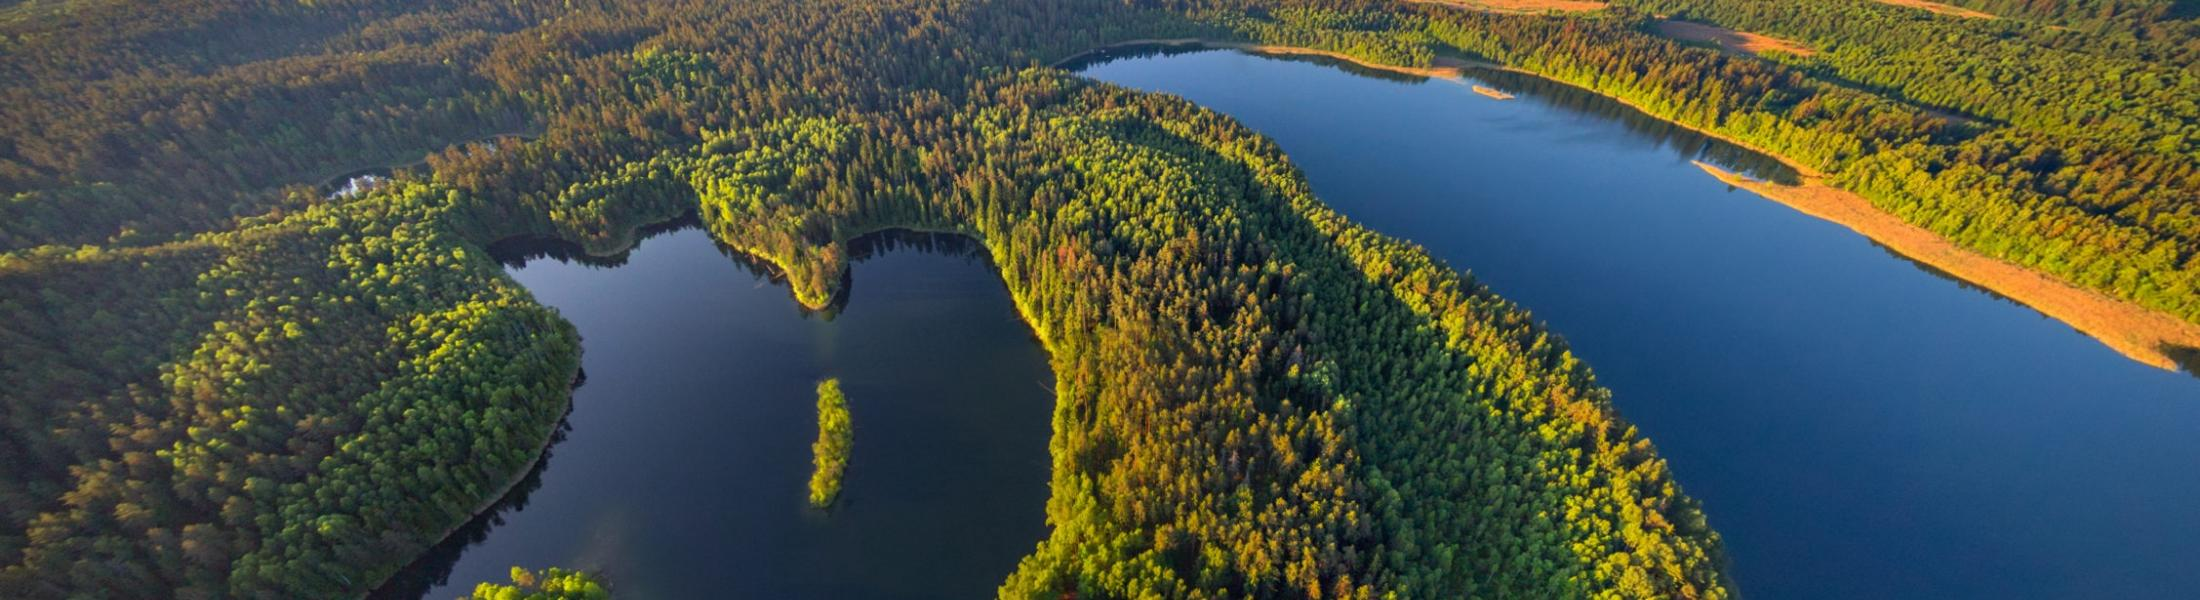 Overhead view of forests and water bodies in Belarus